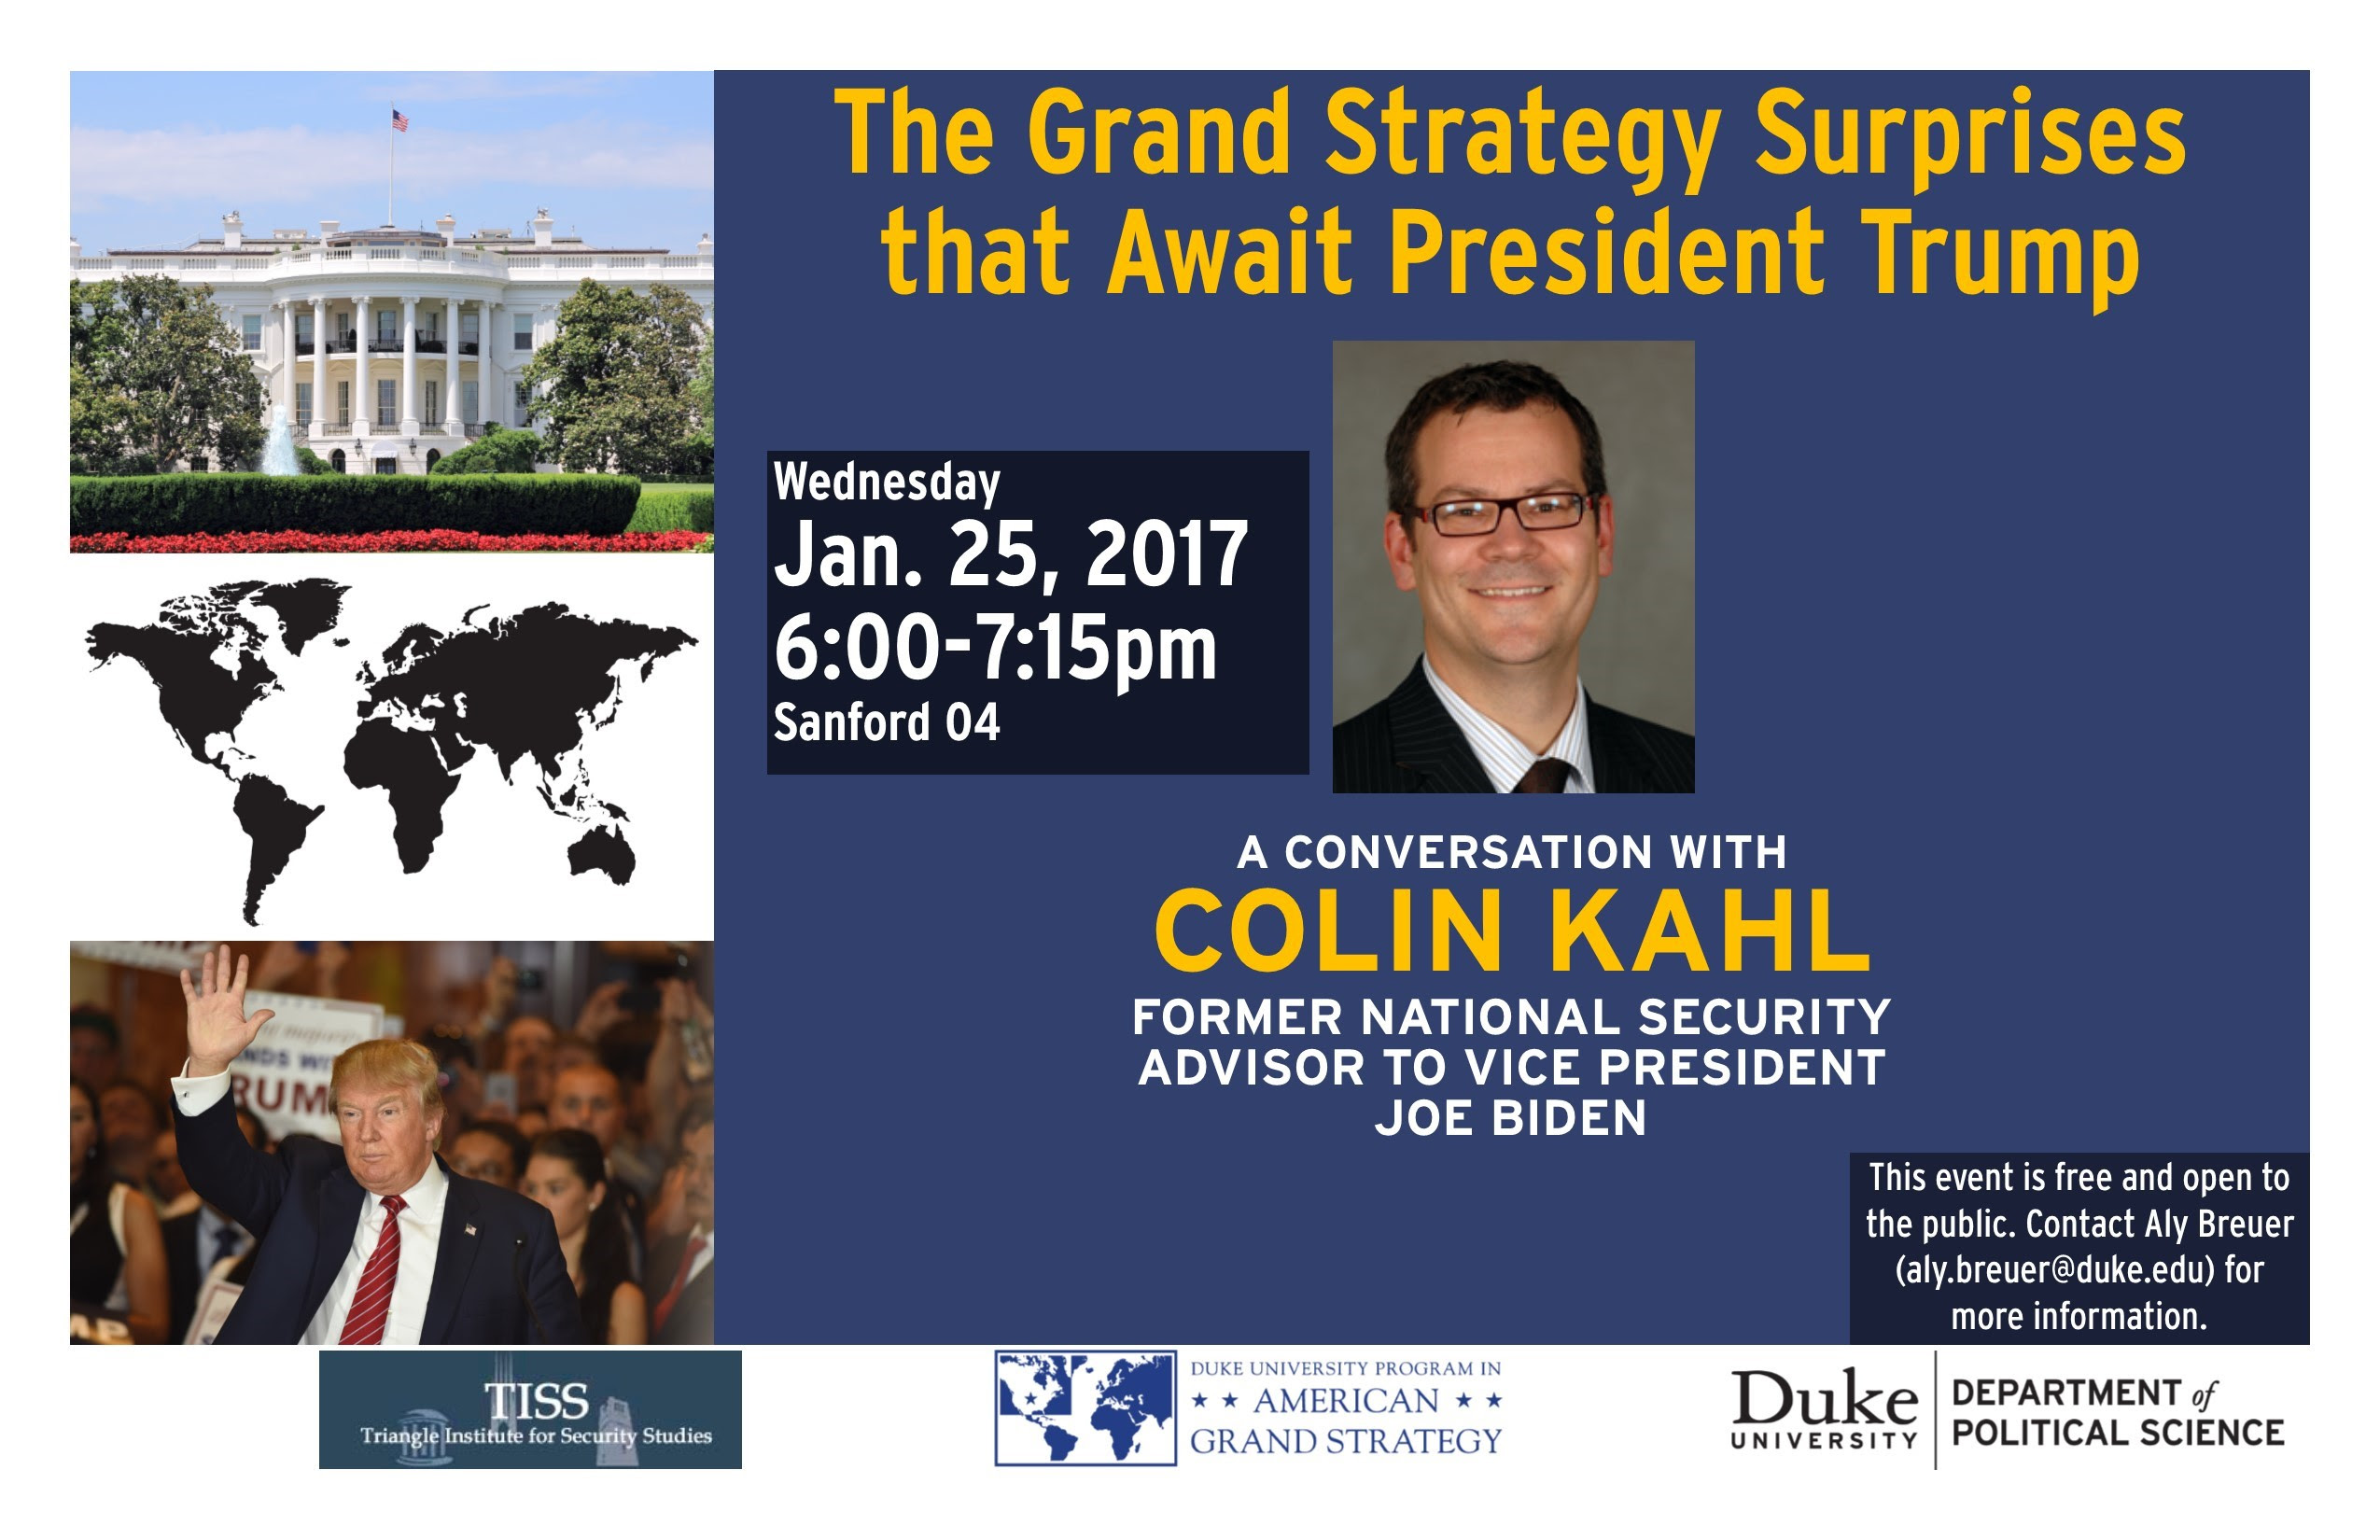 """The Grand Strategy Surprises that Await President Trump"" A Conversation with Colin Kahl @ Room 04, Sanford School of Public Policy 